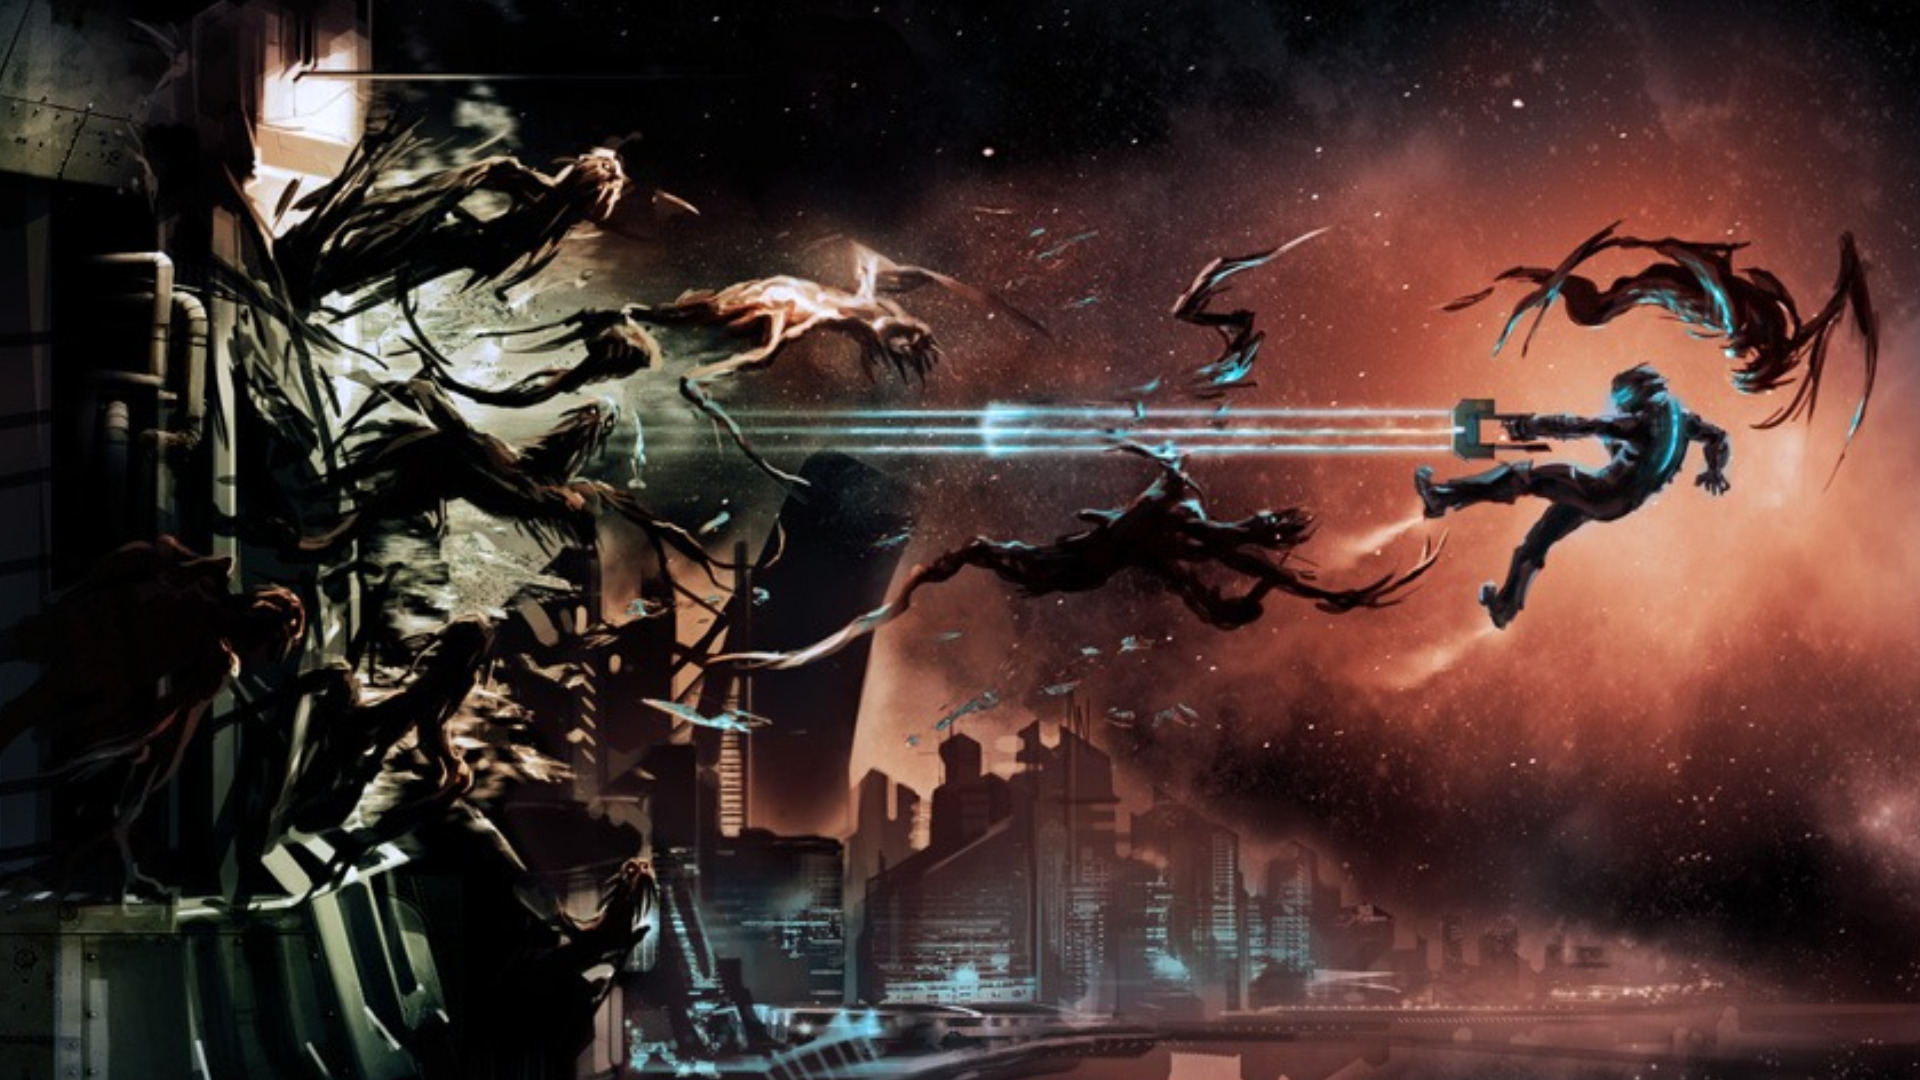 Dead Space 2 Hd Wallpaper Background Image 1920x1080 Id